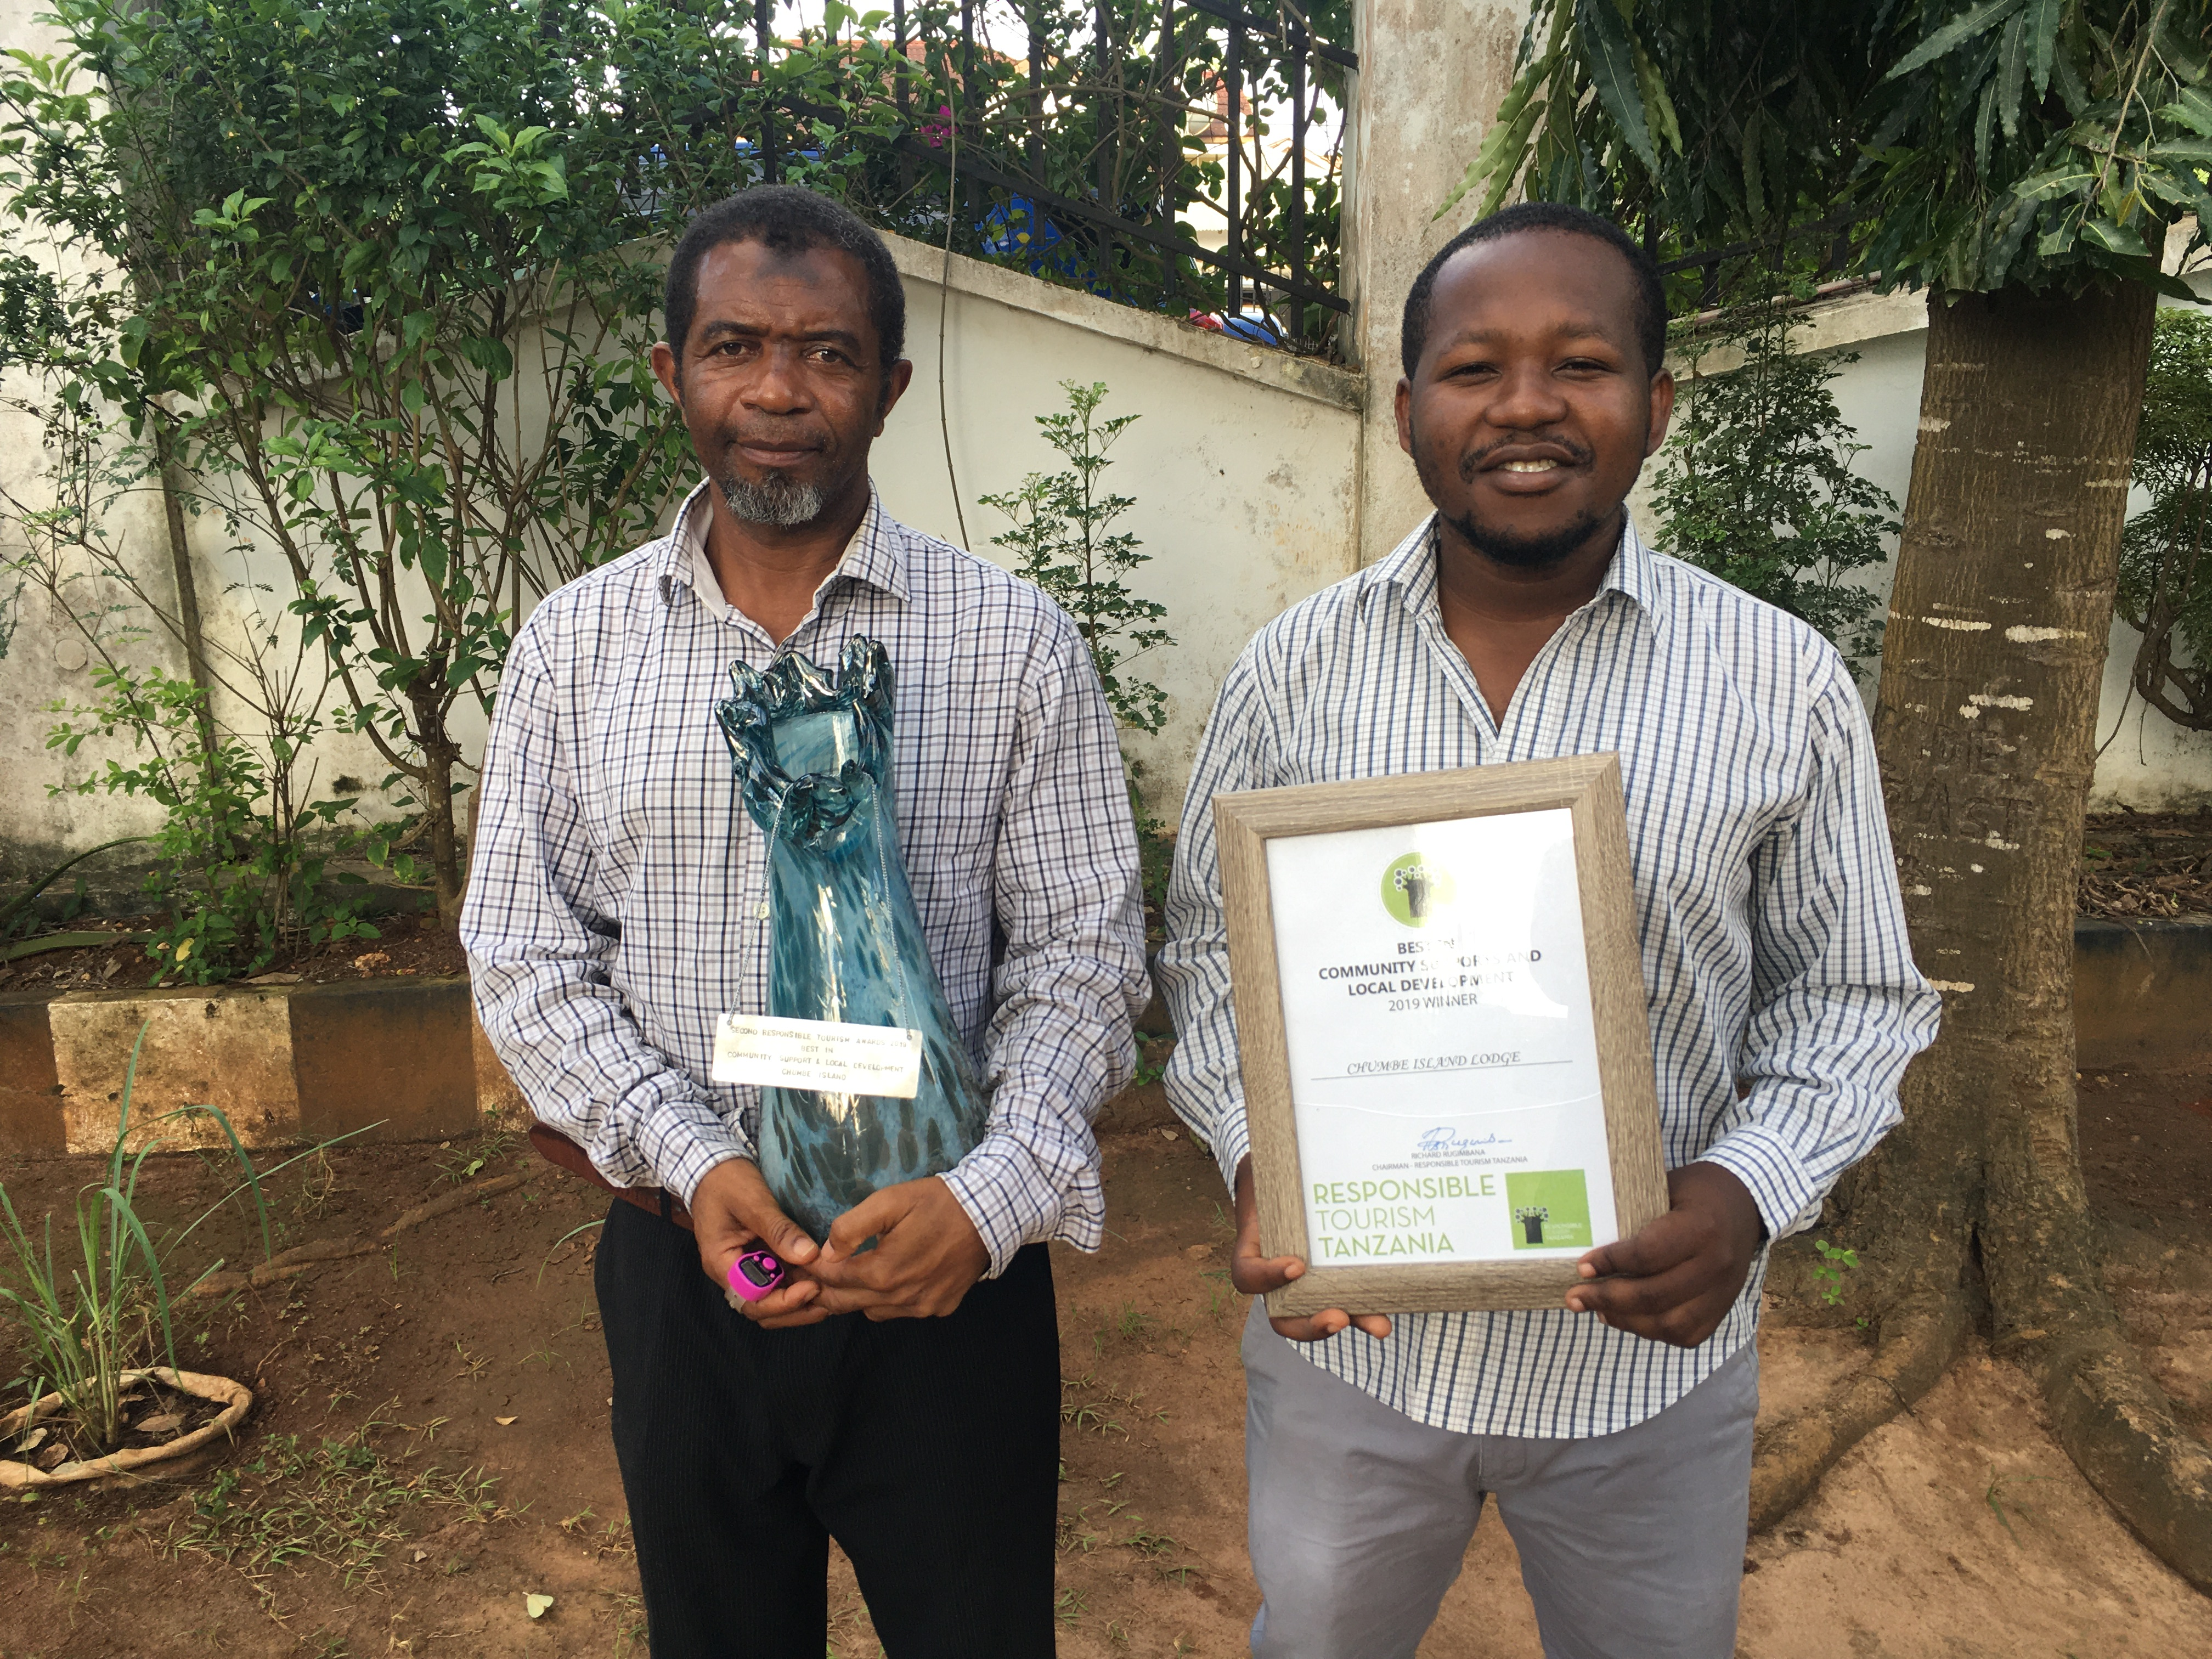 Khamis Khalfan (l) and Enock Kayagambe (r) display our RTTZ recognition